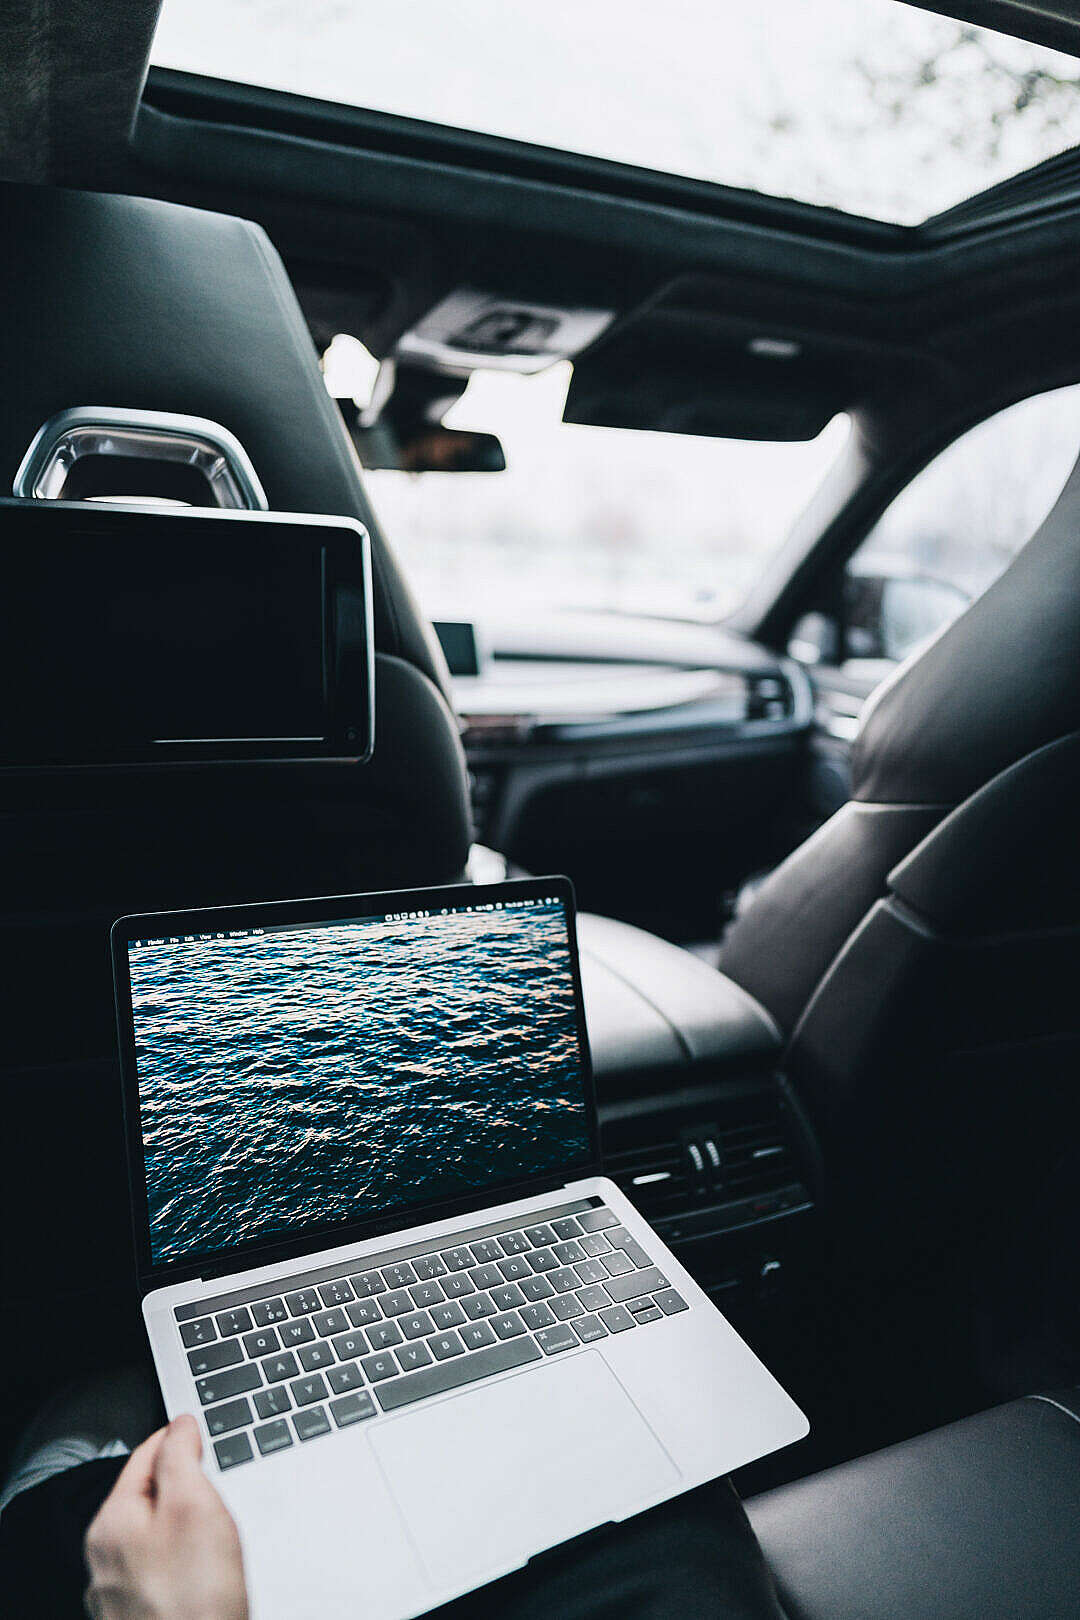 Download Working on a MacBook on Rear Seats in a Car FREE Stock Photo